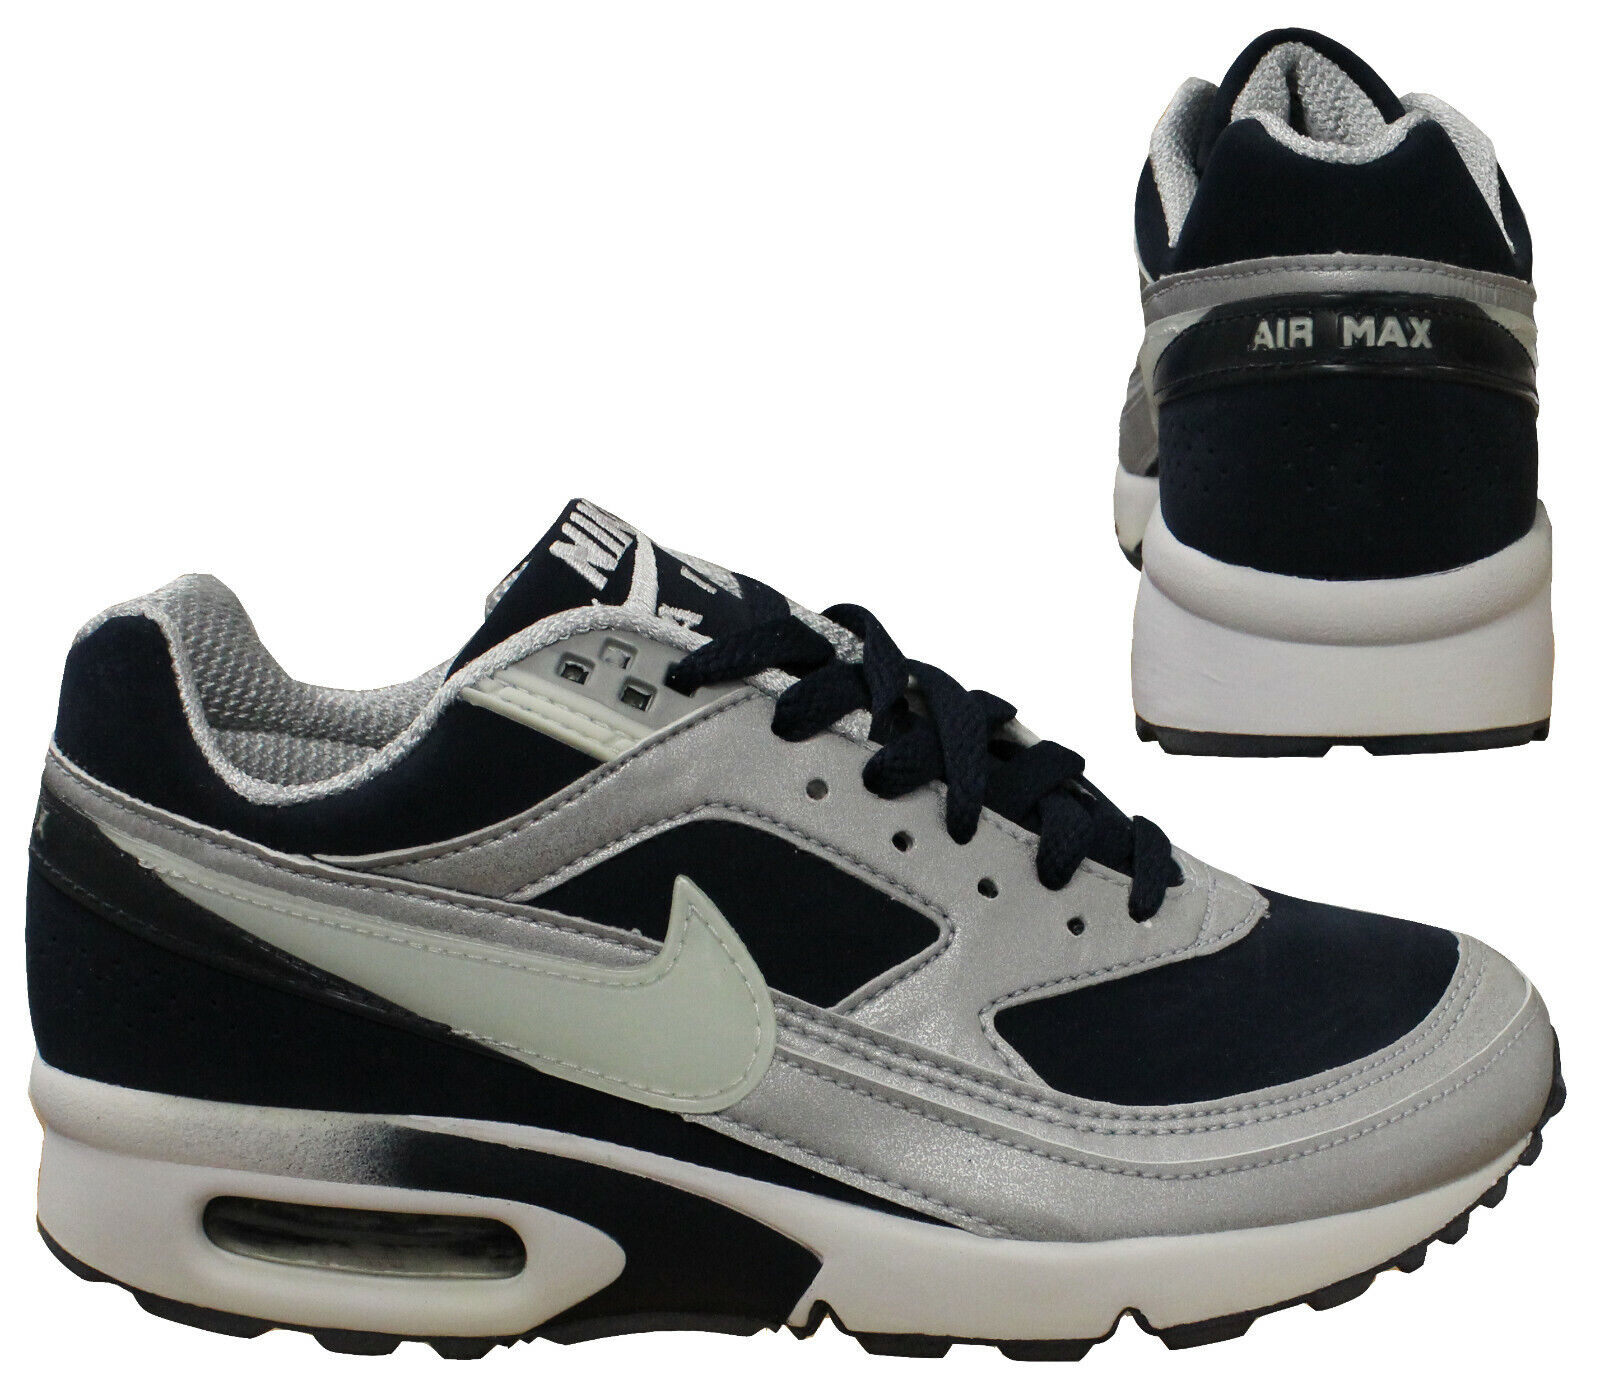 Air Max Classic Details About Nike Air Max Classic Bw 2003 Rare Vintage Kids Navy Low Trainers 609035 411 M20